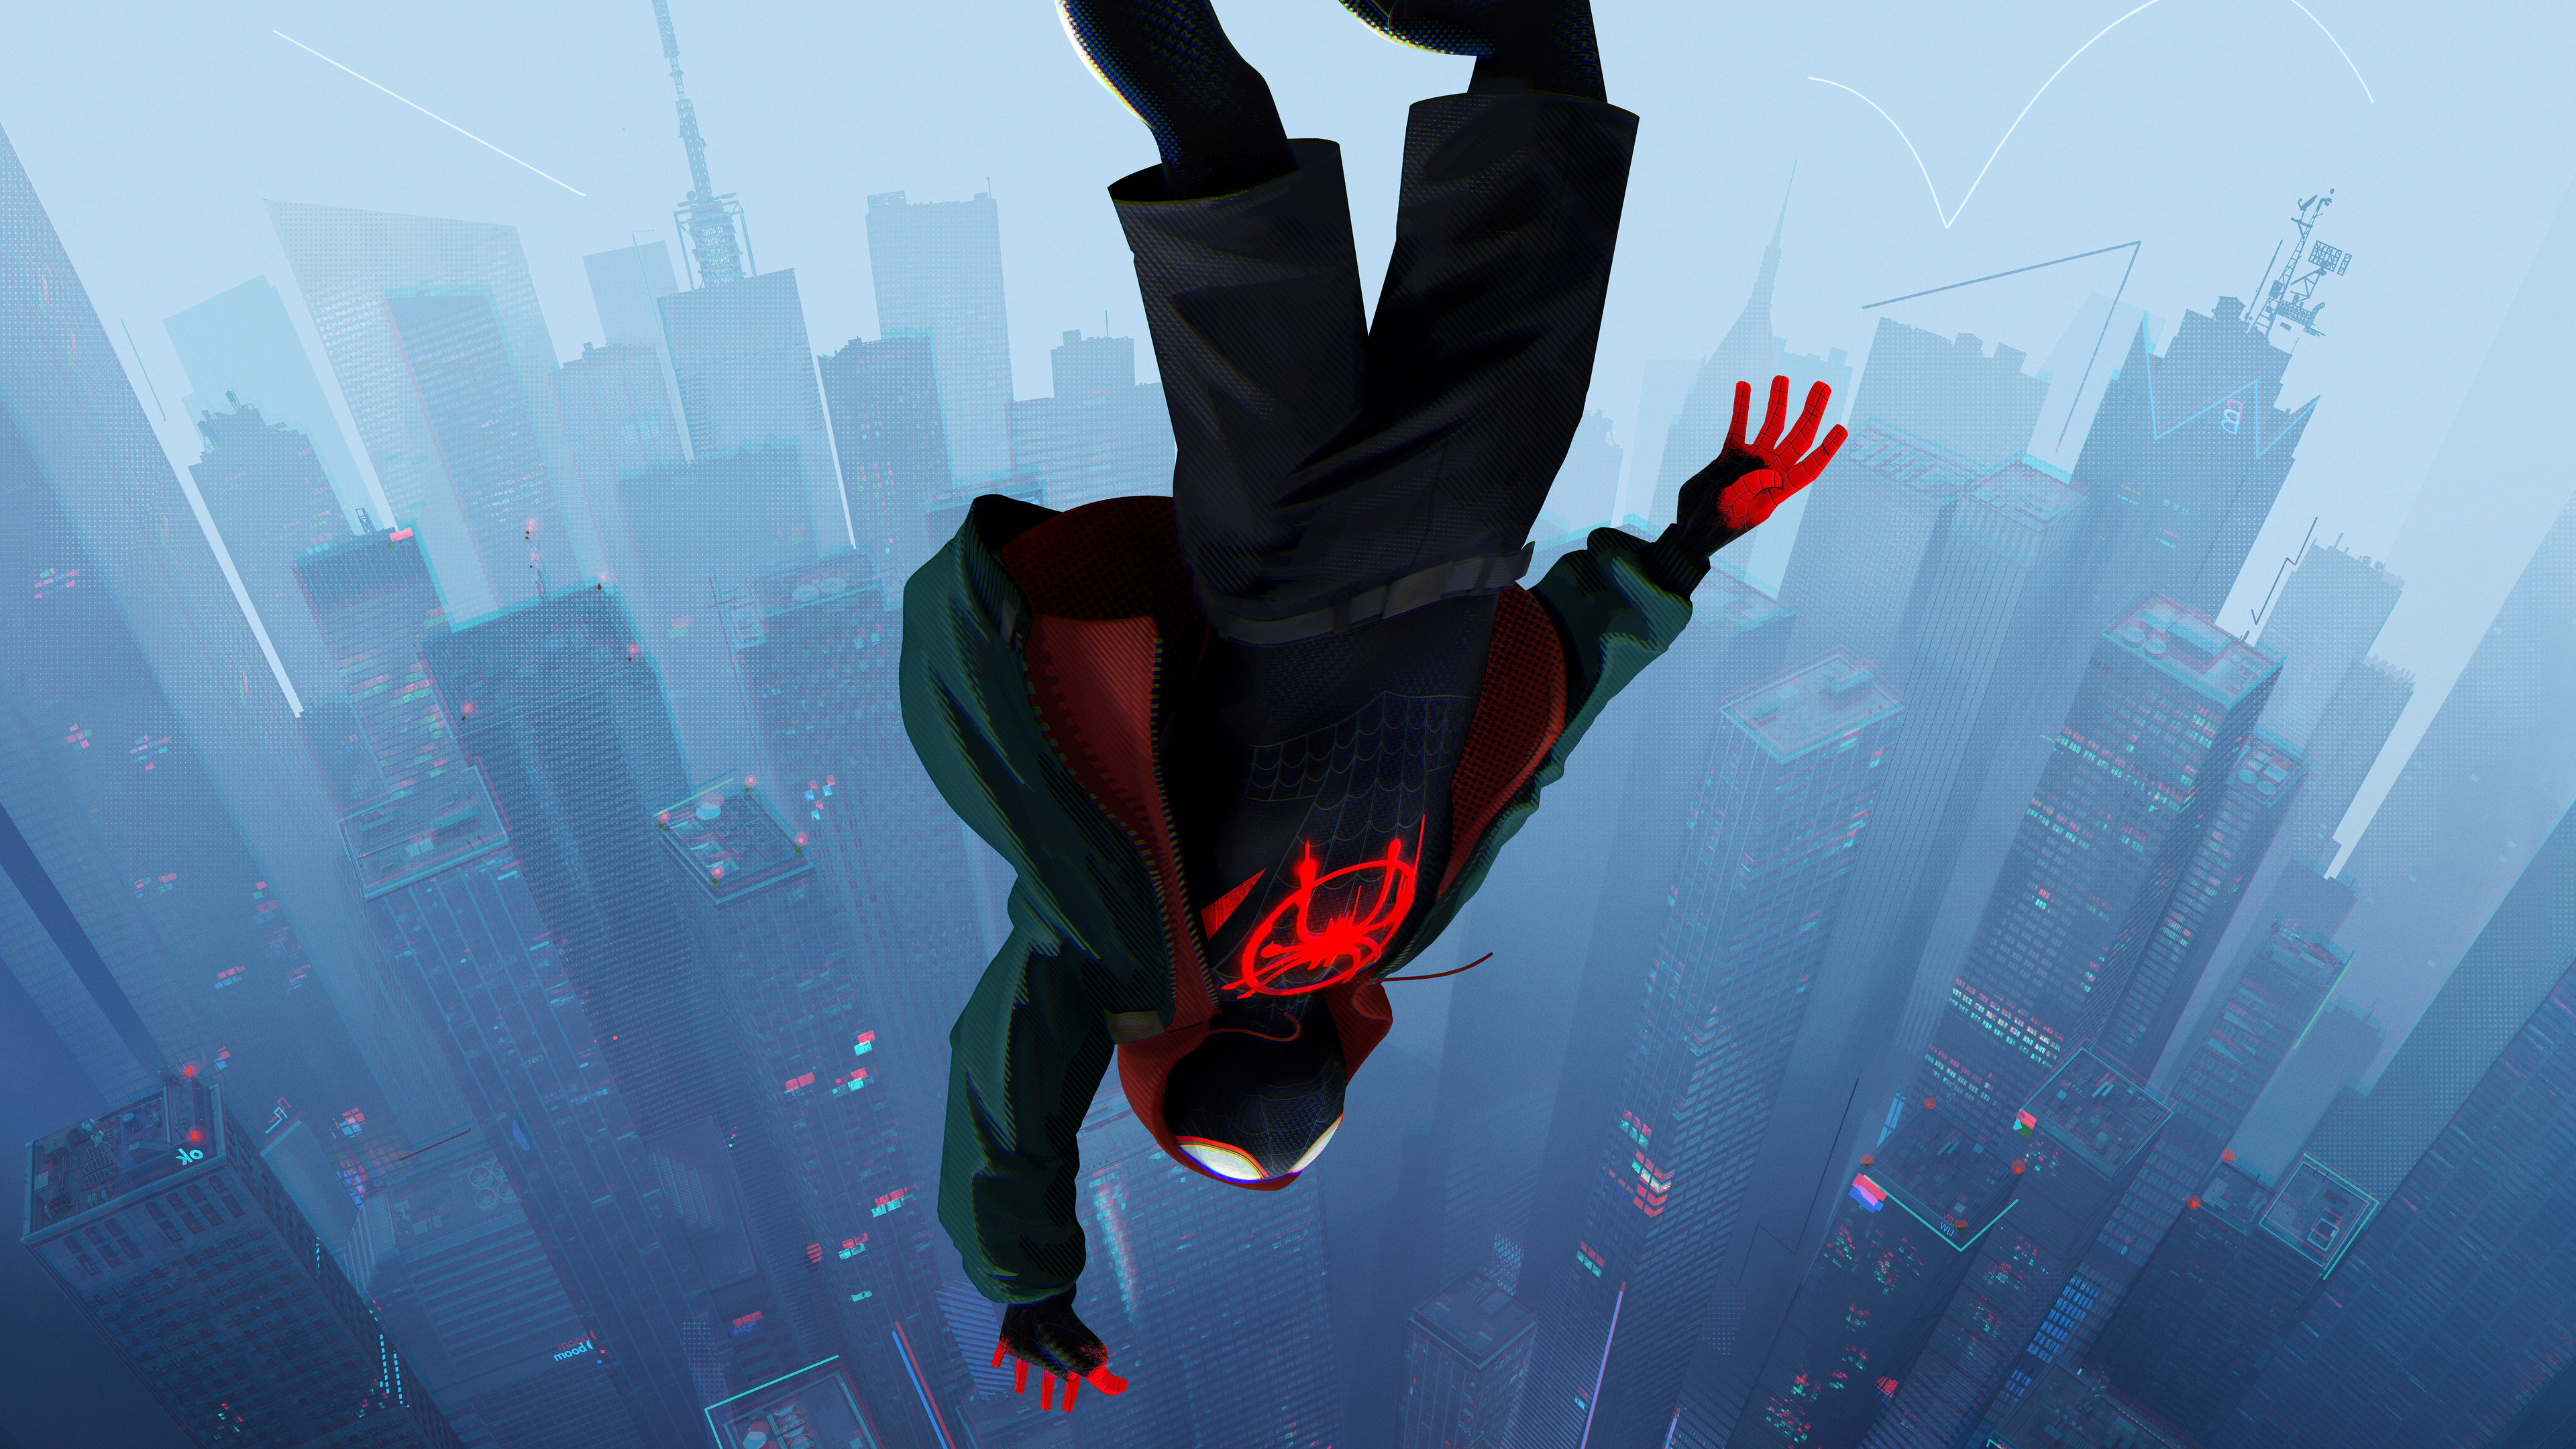 General 3840x2160 Spider-Man: Into the Spider-Verse Miles Morales Spider-Man Marvel Comics movies animated movies